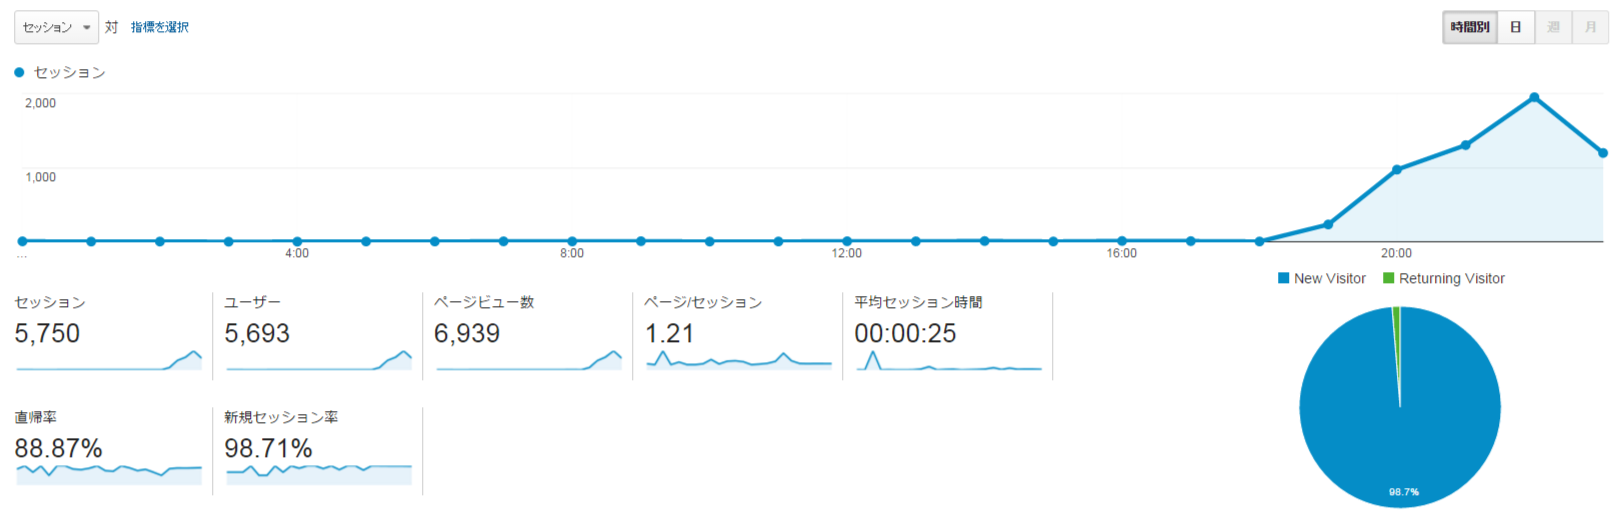 FireShot Capture 1 - ユーザー サマリー - Google Analytics_ - https___www.google.com_analytics_web_